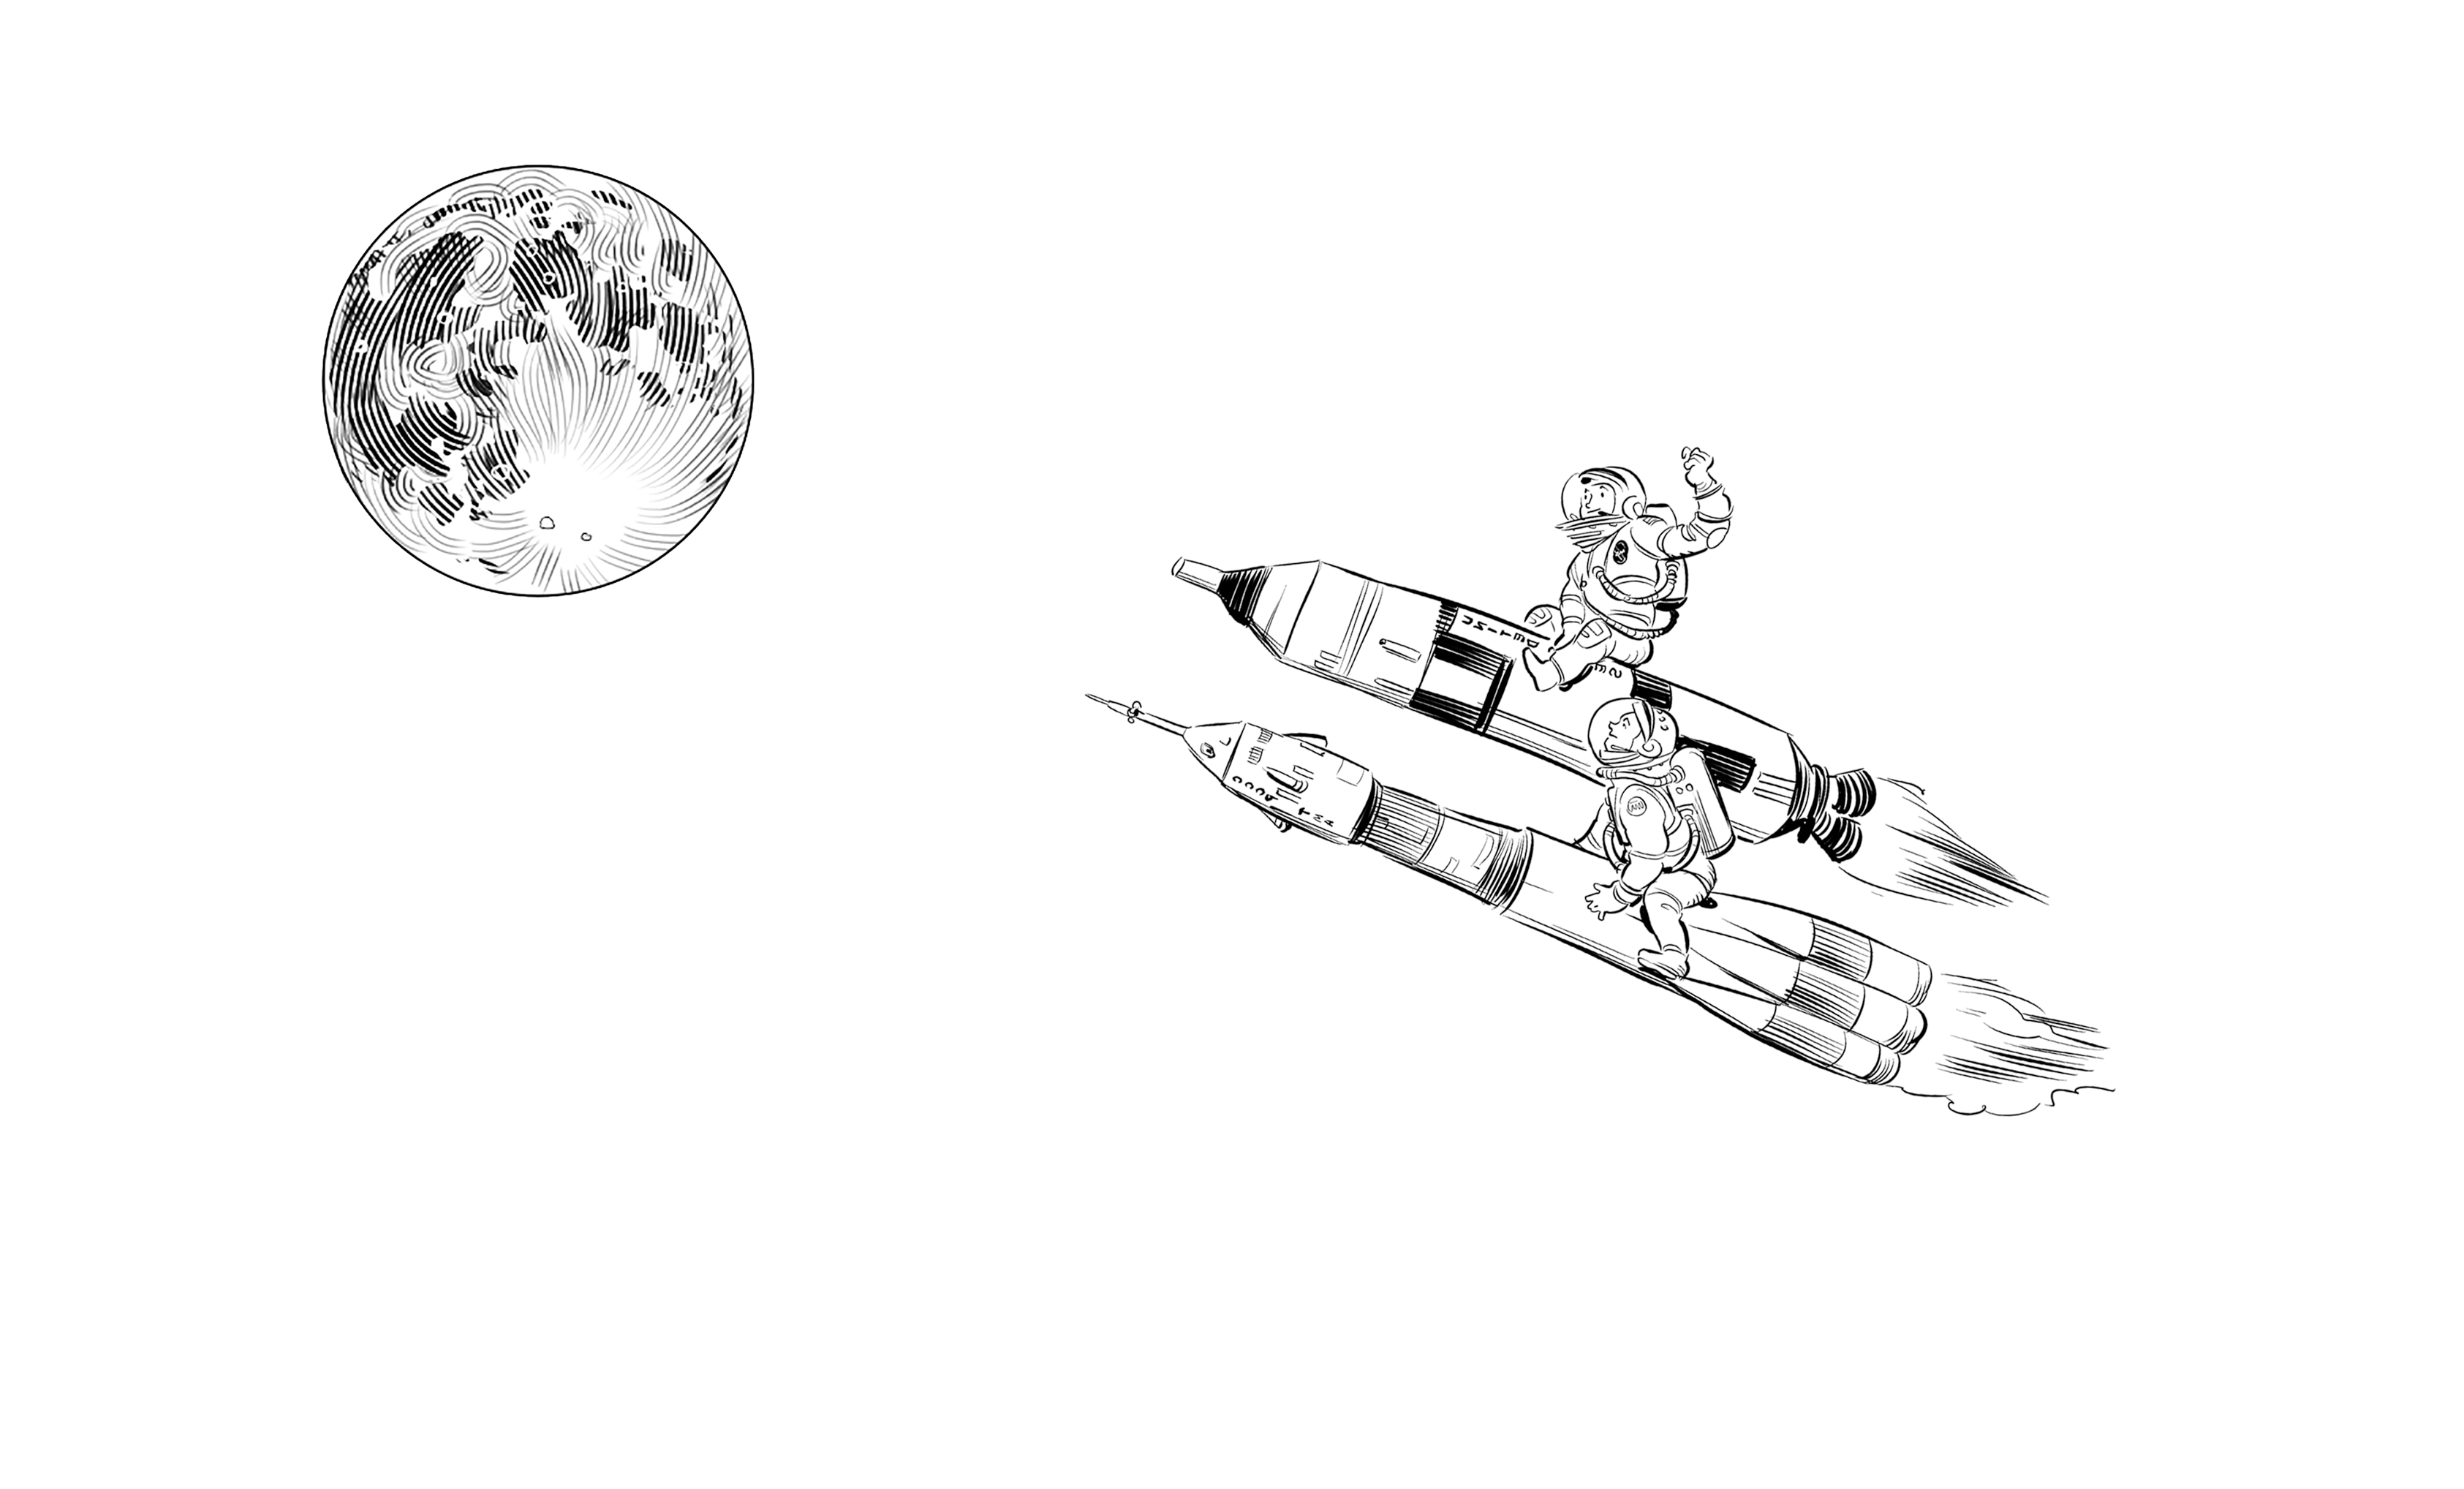 Drawing rockets epic. Race to space moon